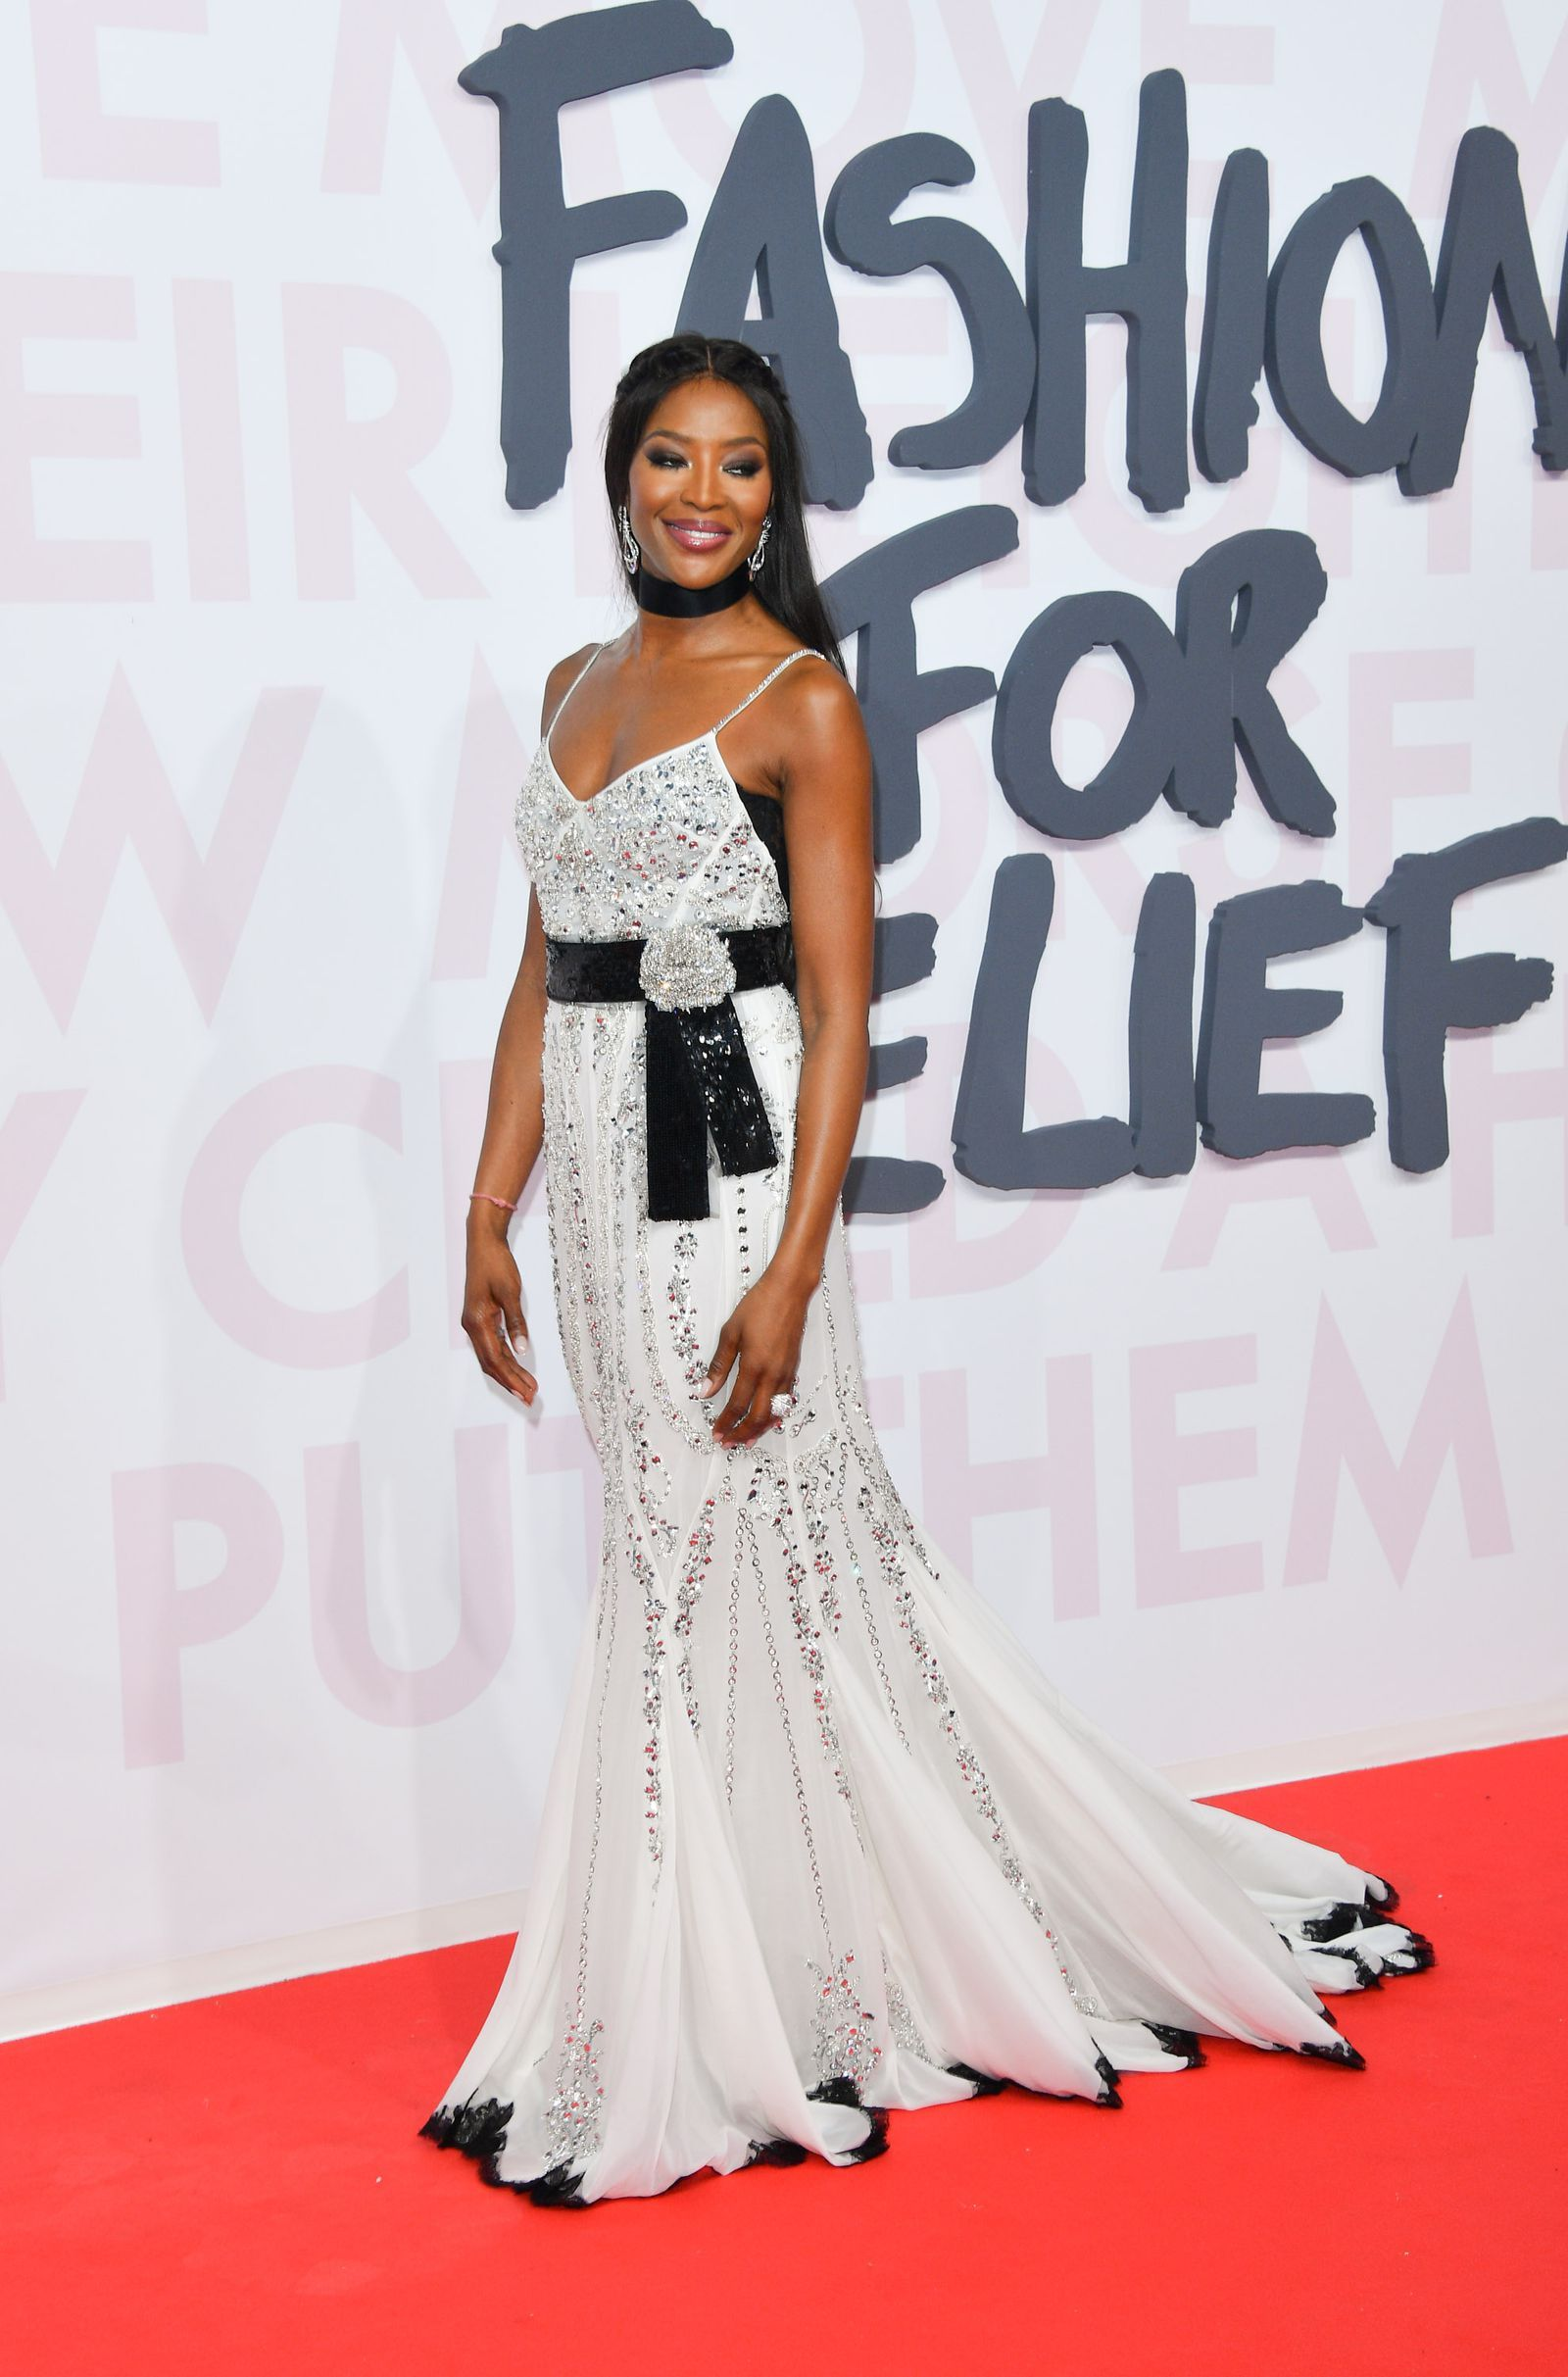 e244fd3bef8 All the Red Carpet Looks From the 2018 Fashion For Relief Show ...